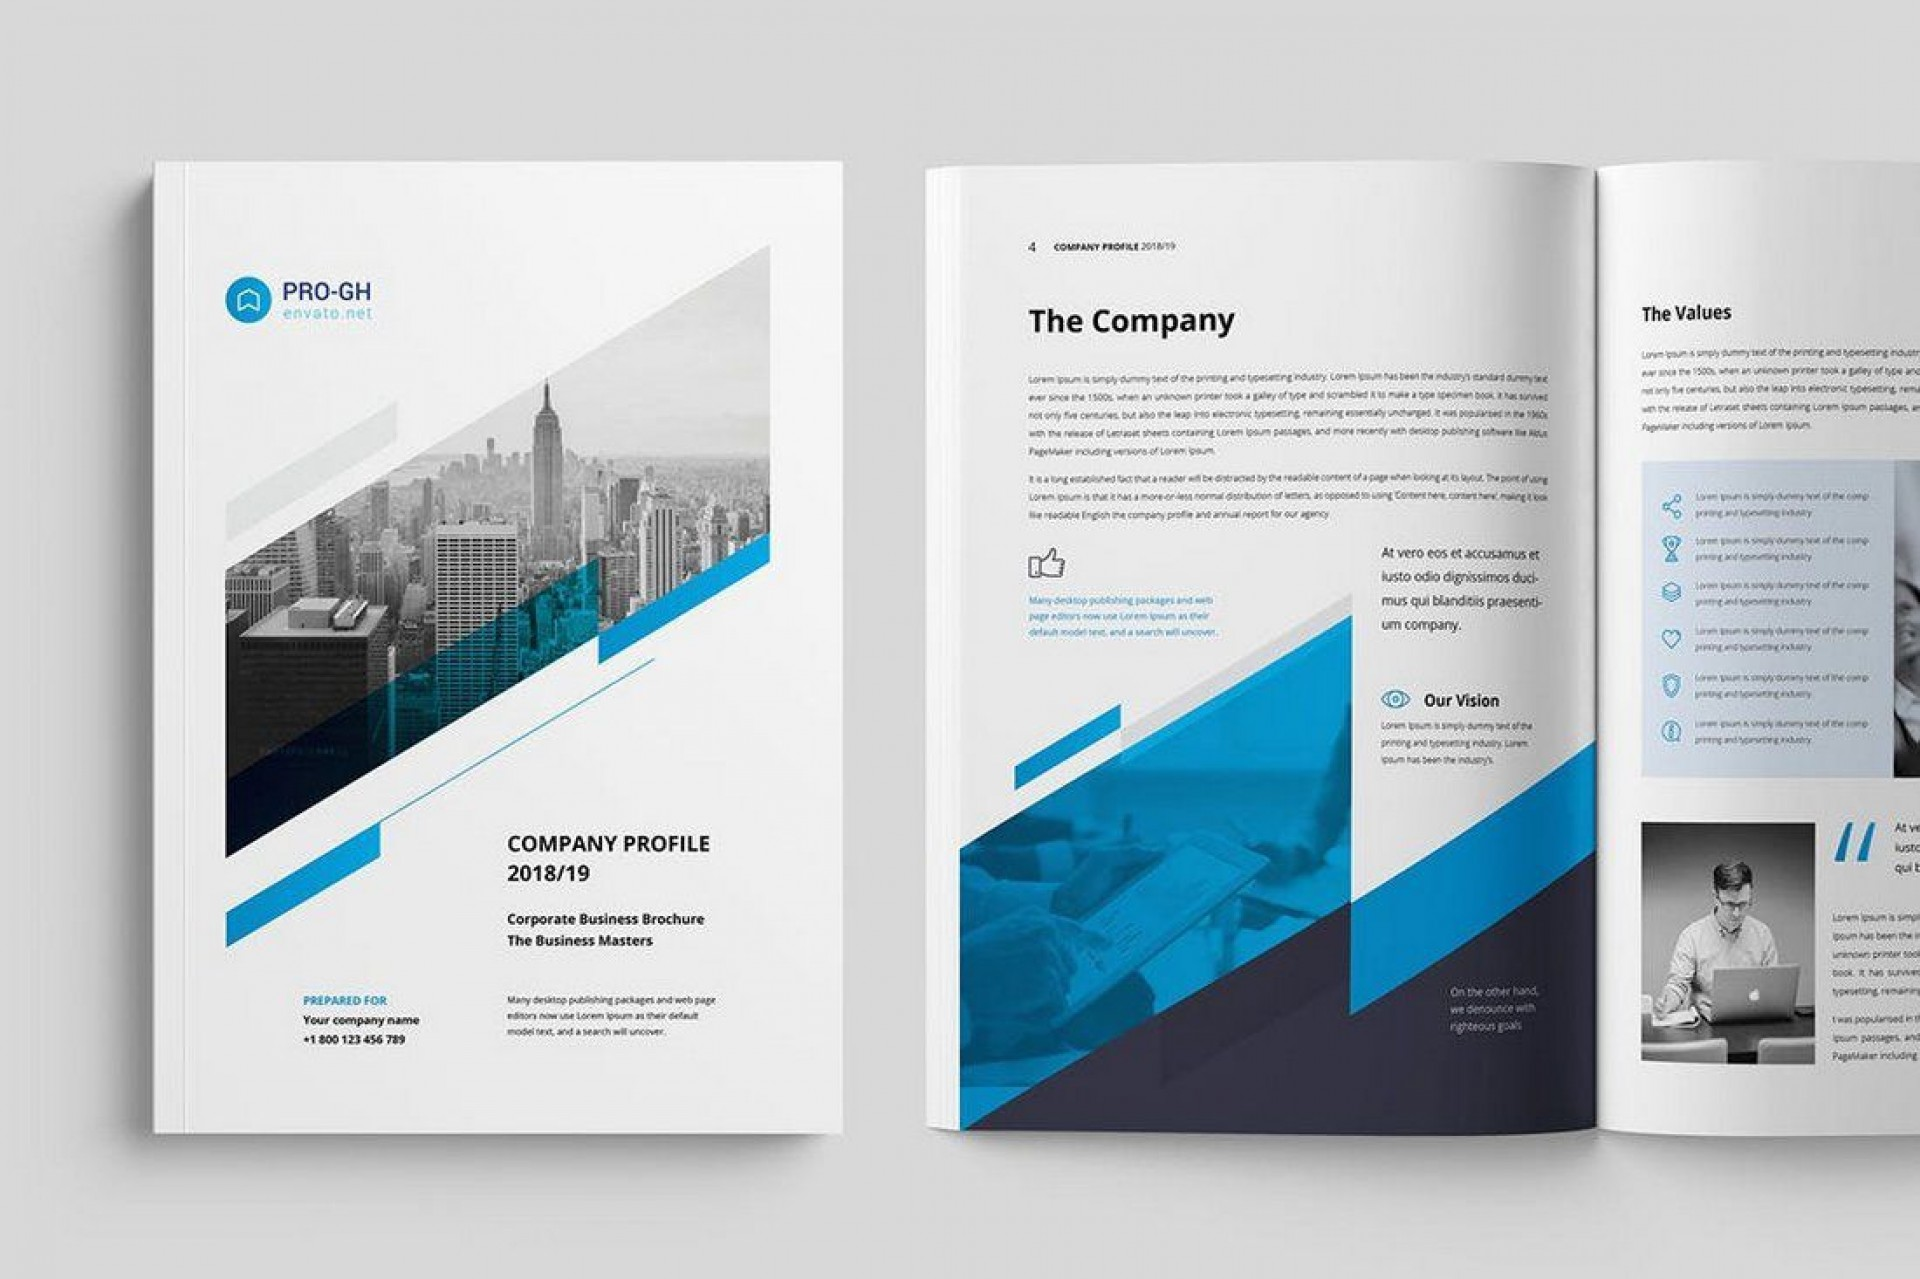 006 Fearsome Busines Brochure Design Template Free Download High Definition 1920